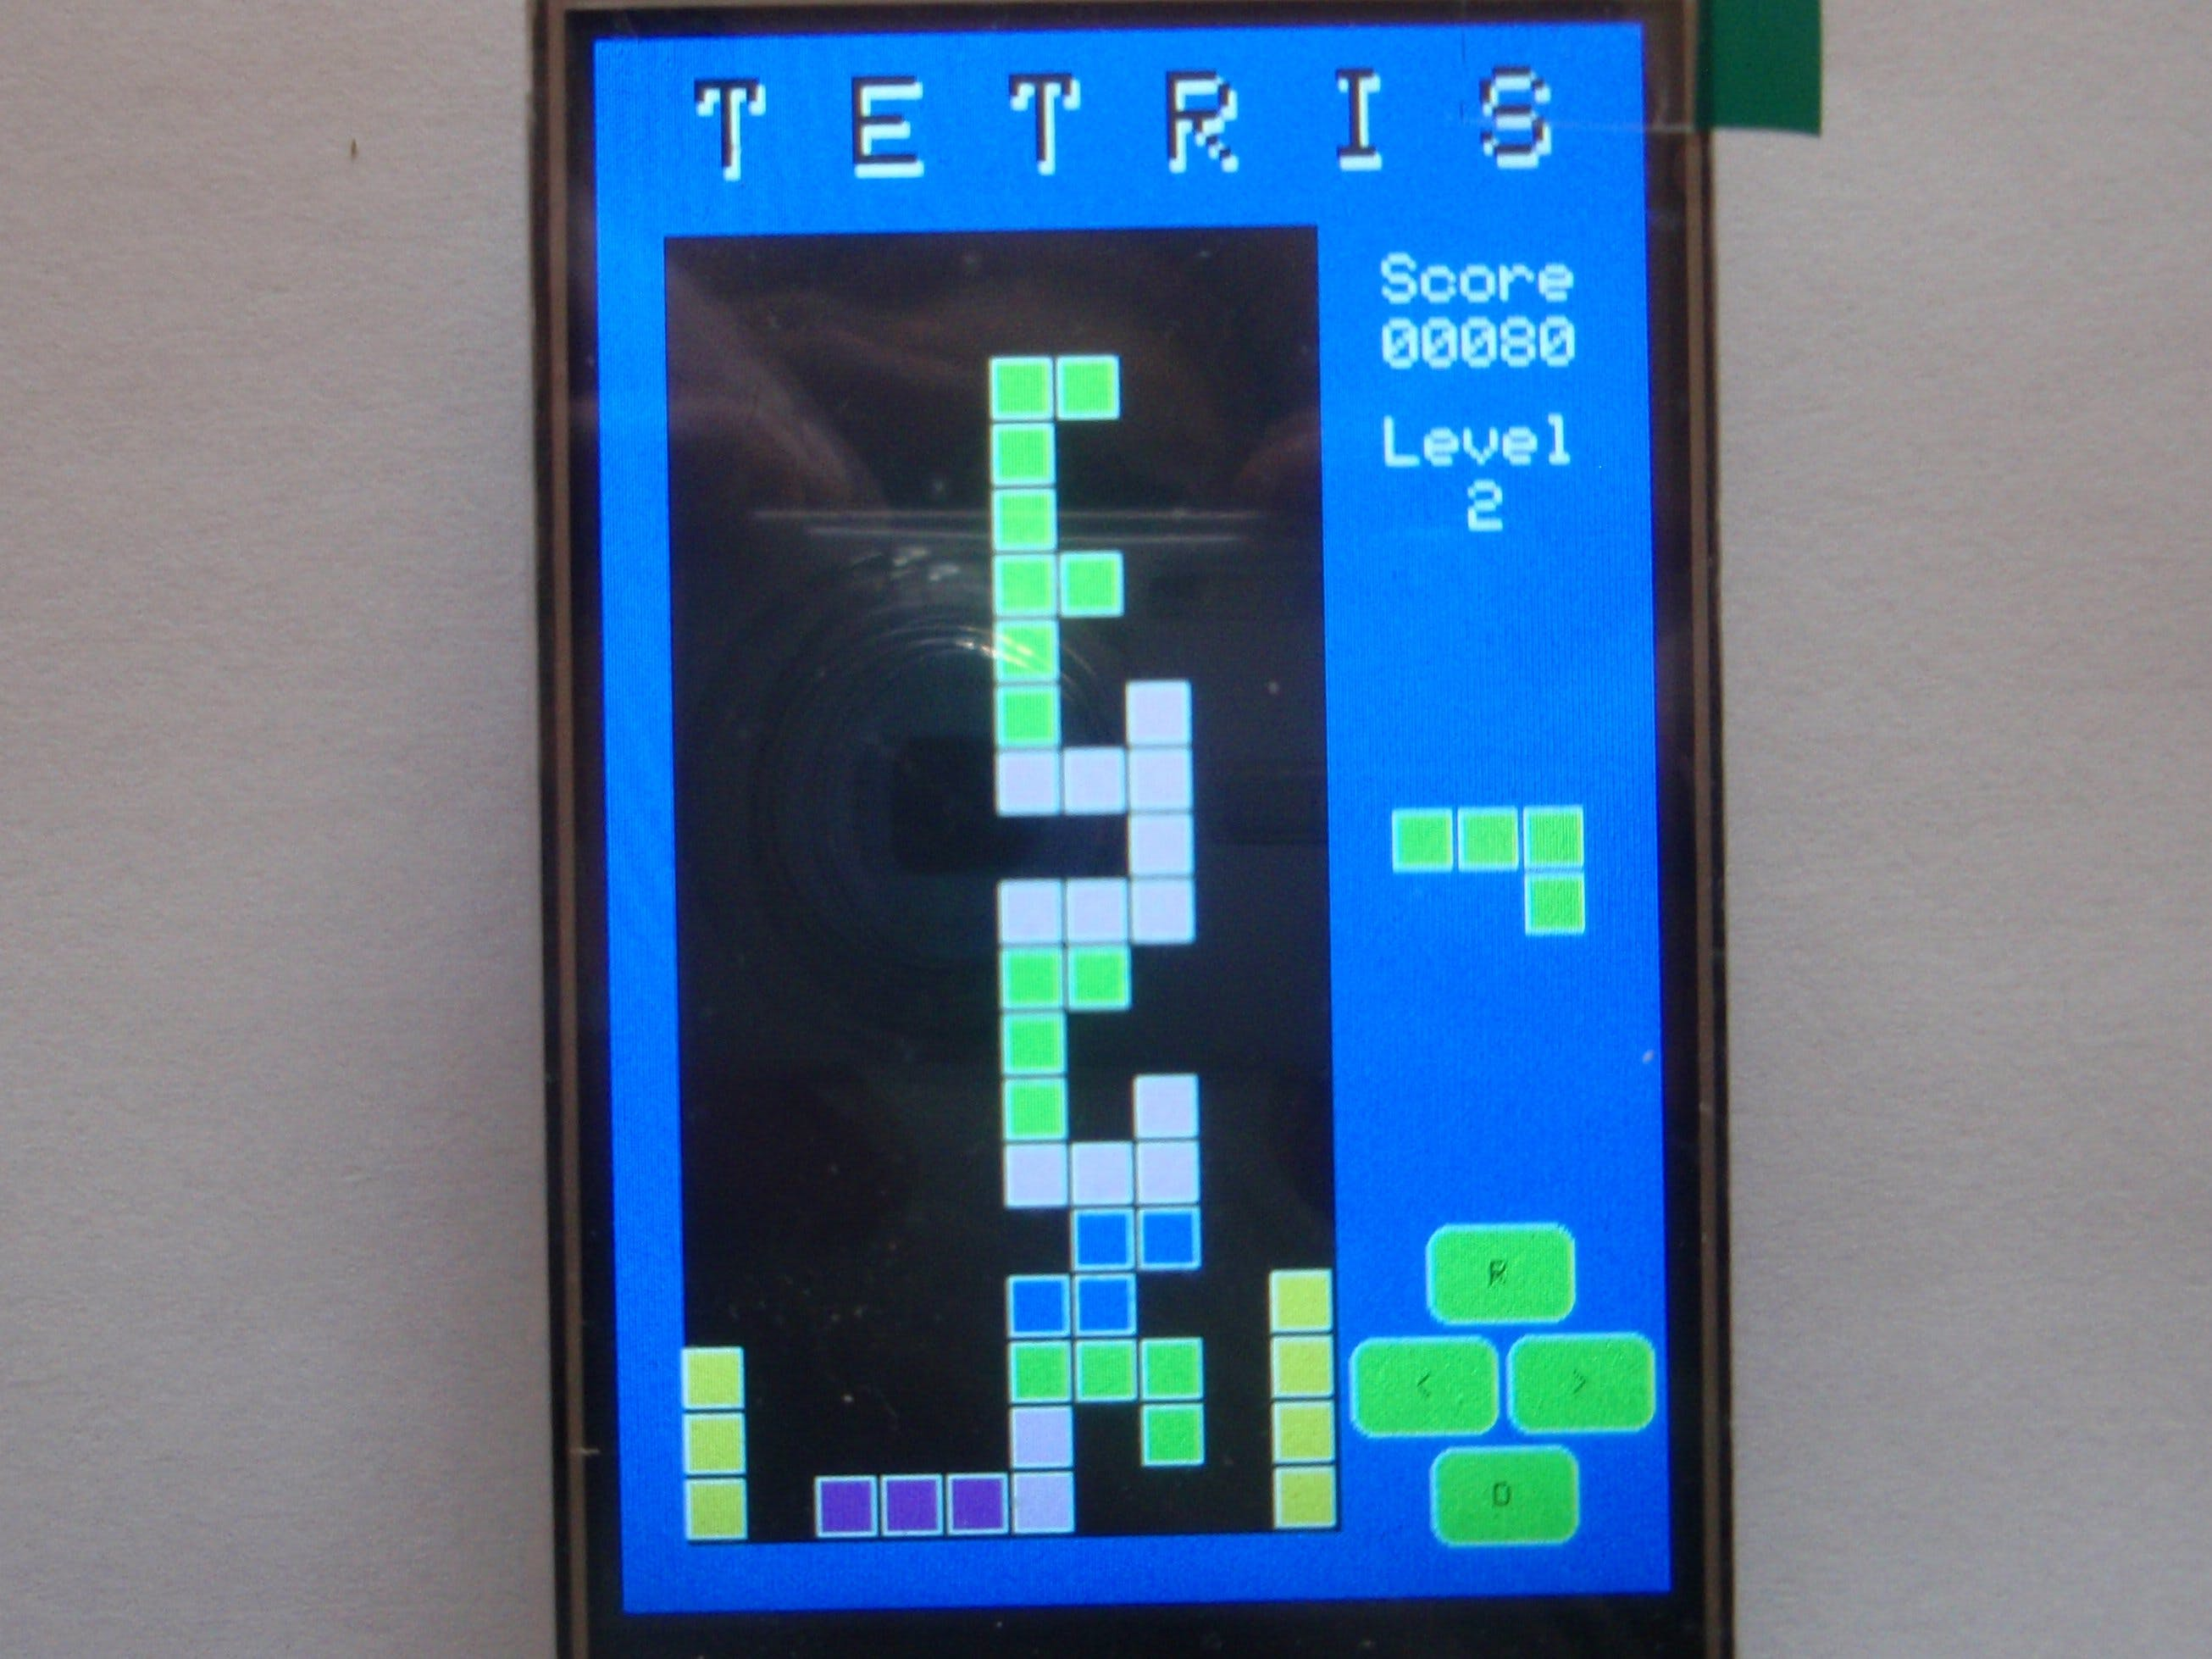 TETRIS clone for Arduino Uno with touchscreen